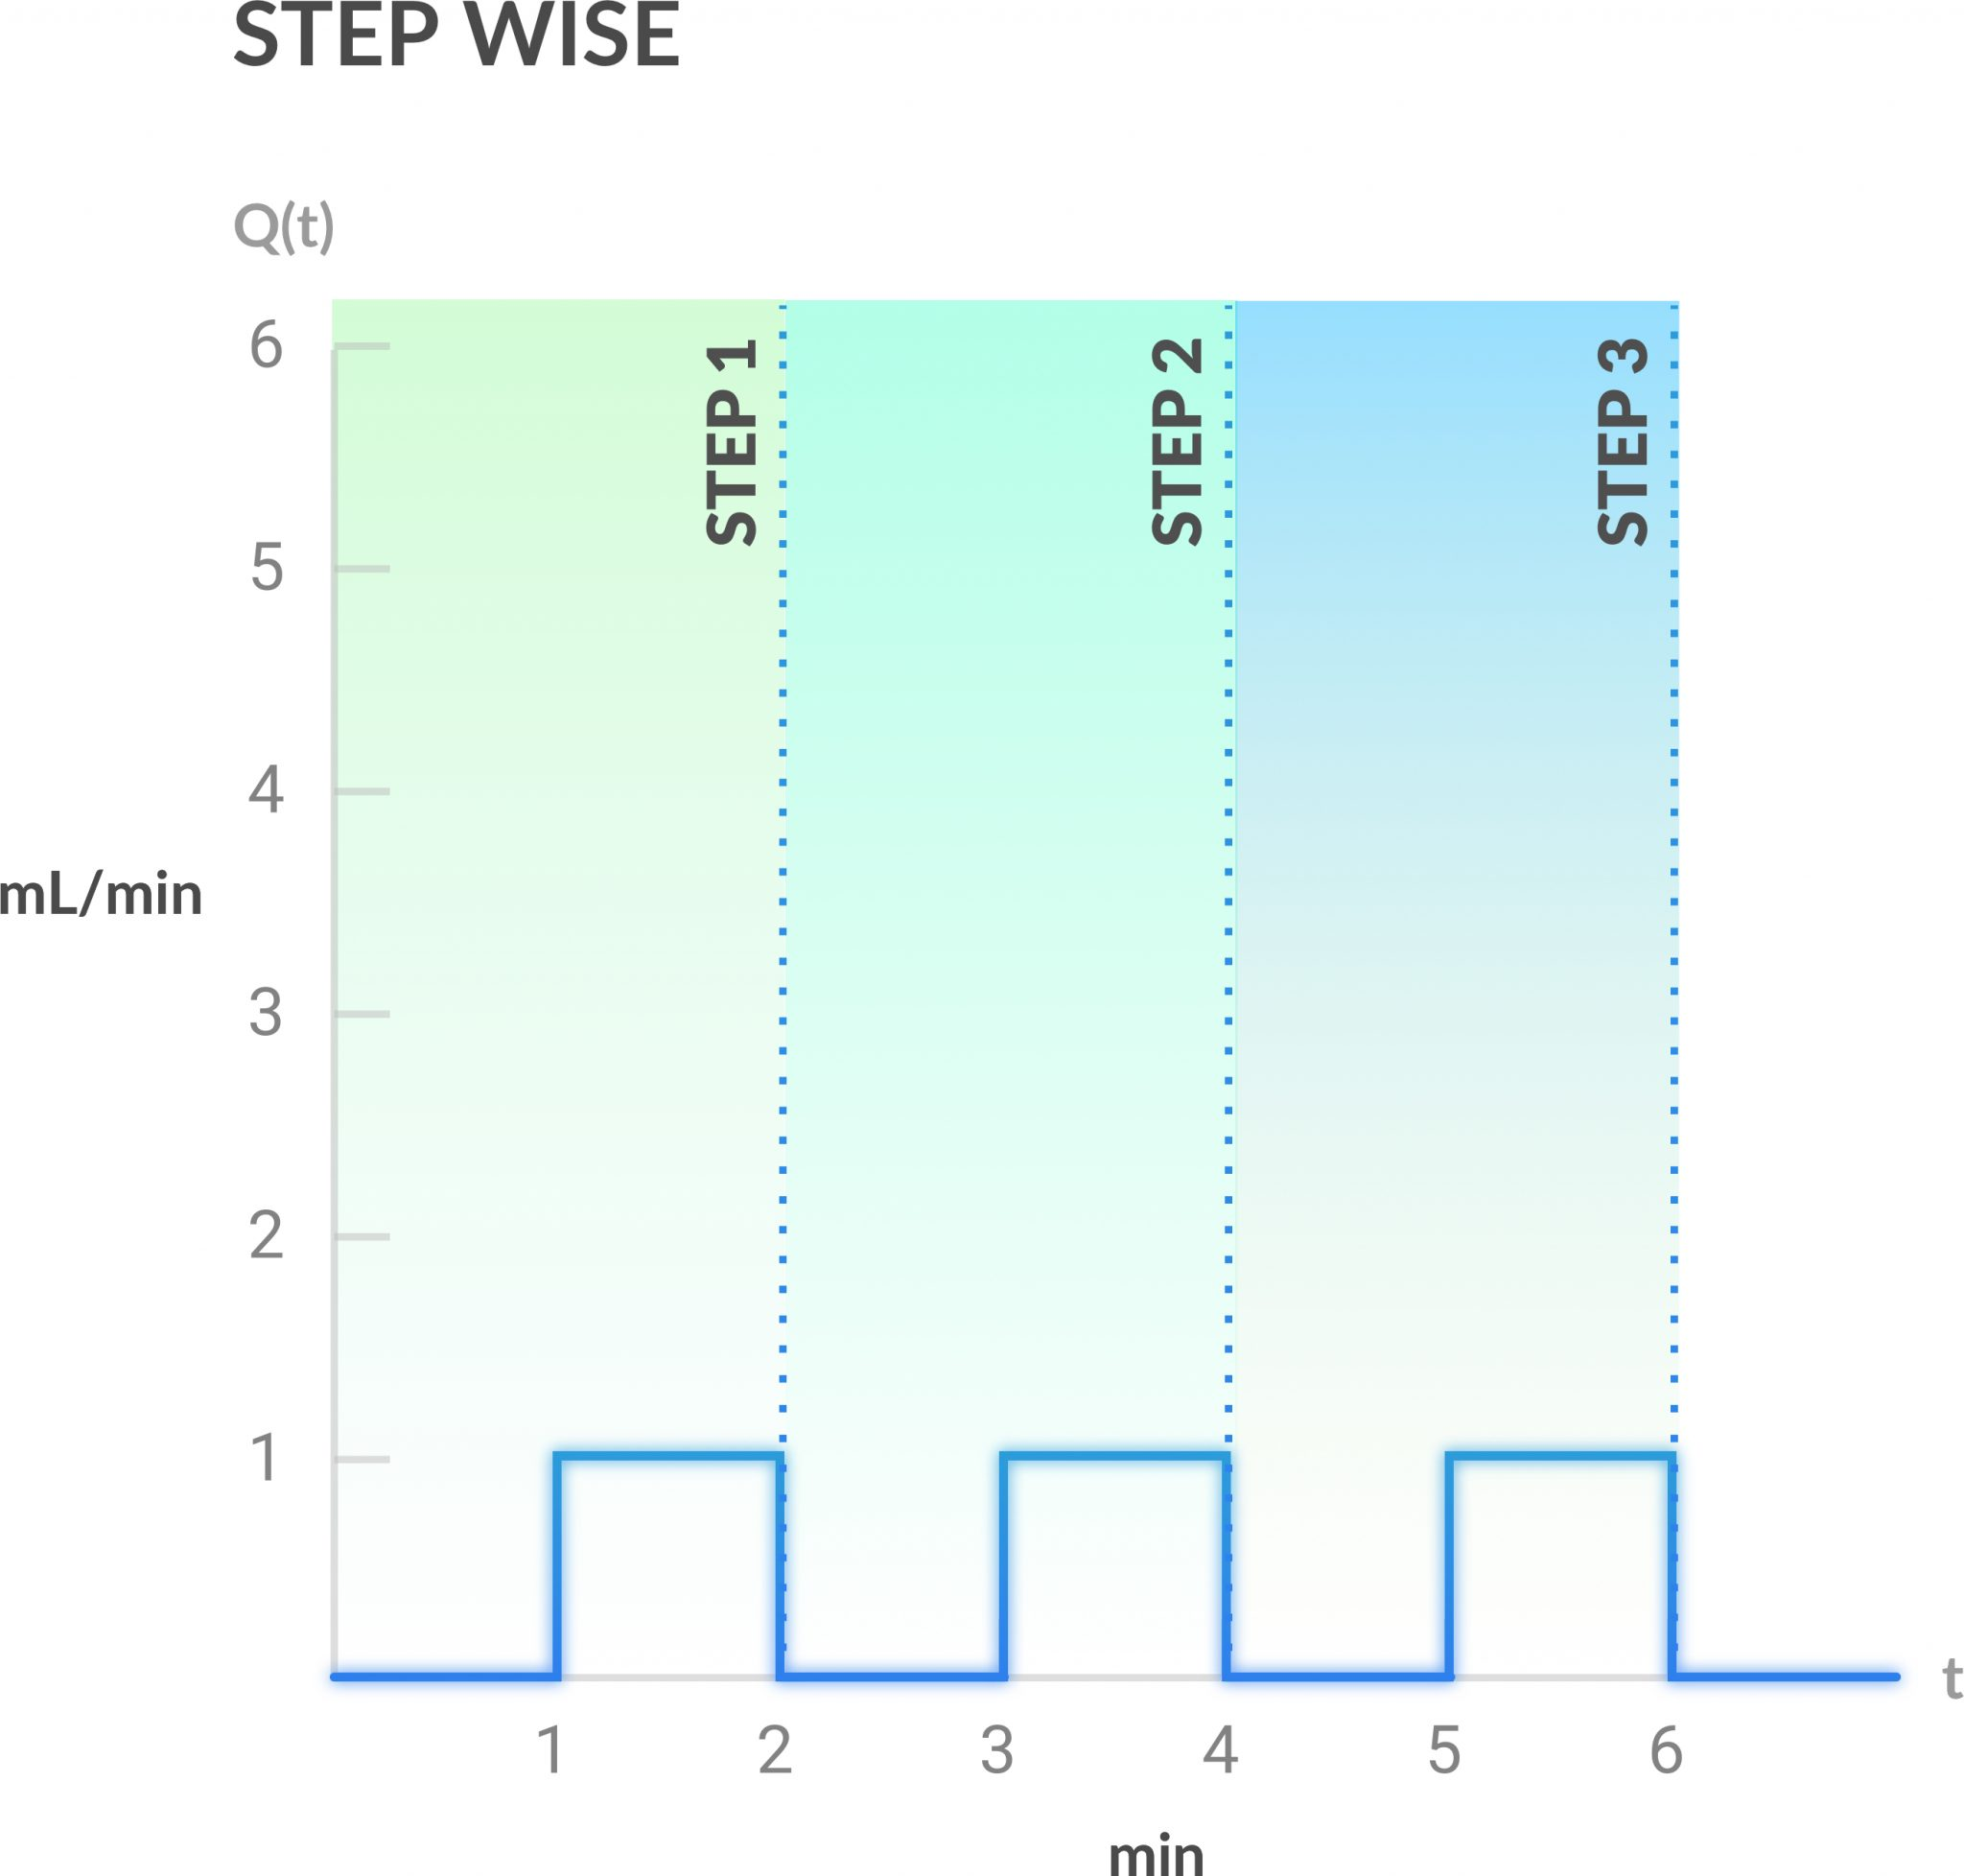 step wise profile